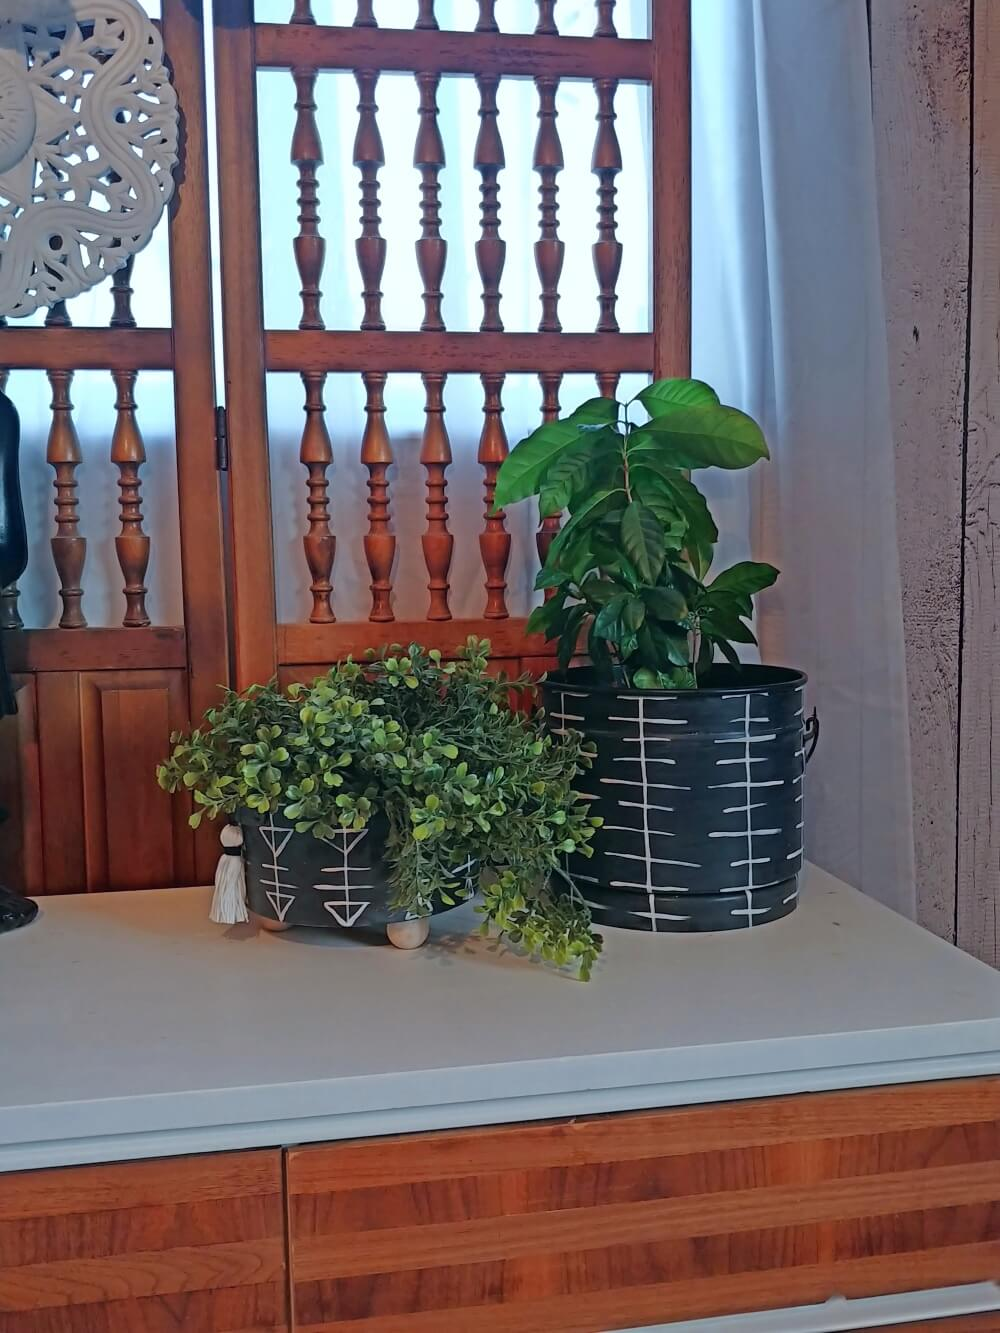 Vintage Aluminum Camping Gear Upcycled to Pretty Boho Planters!